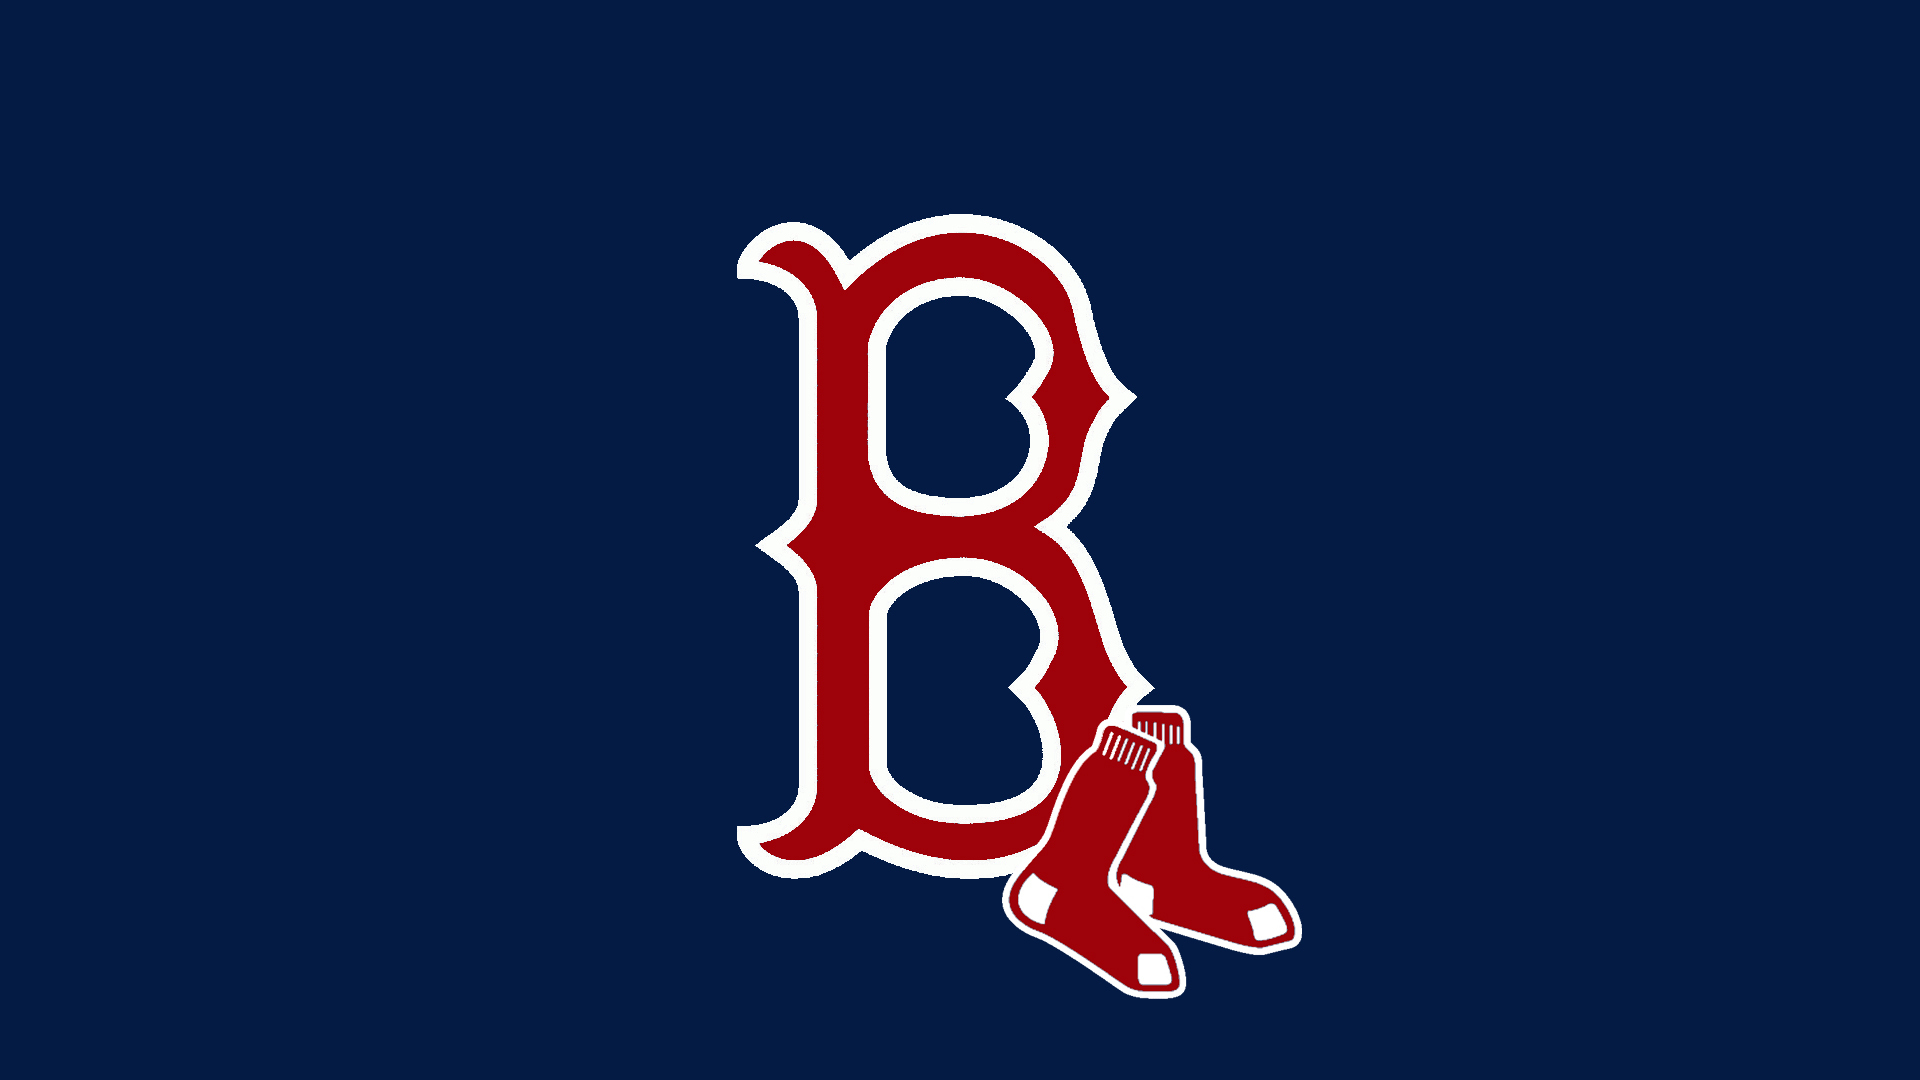 Boston Red Sox Wallpaper   Best MLB Team Wallpapers 1920x1080